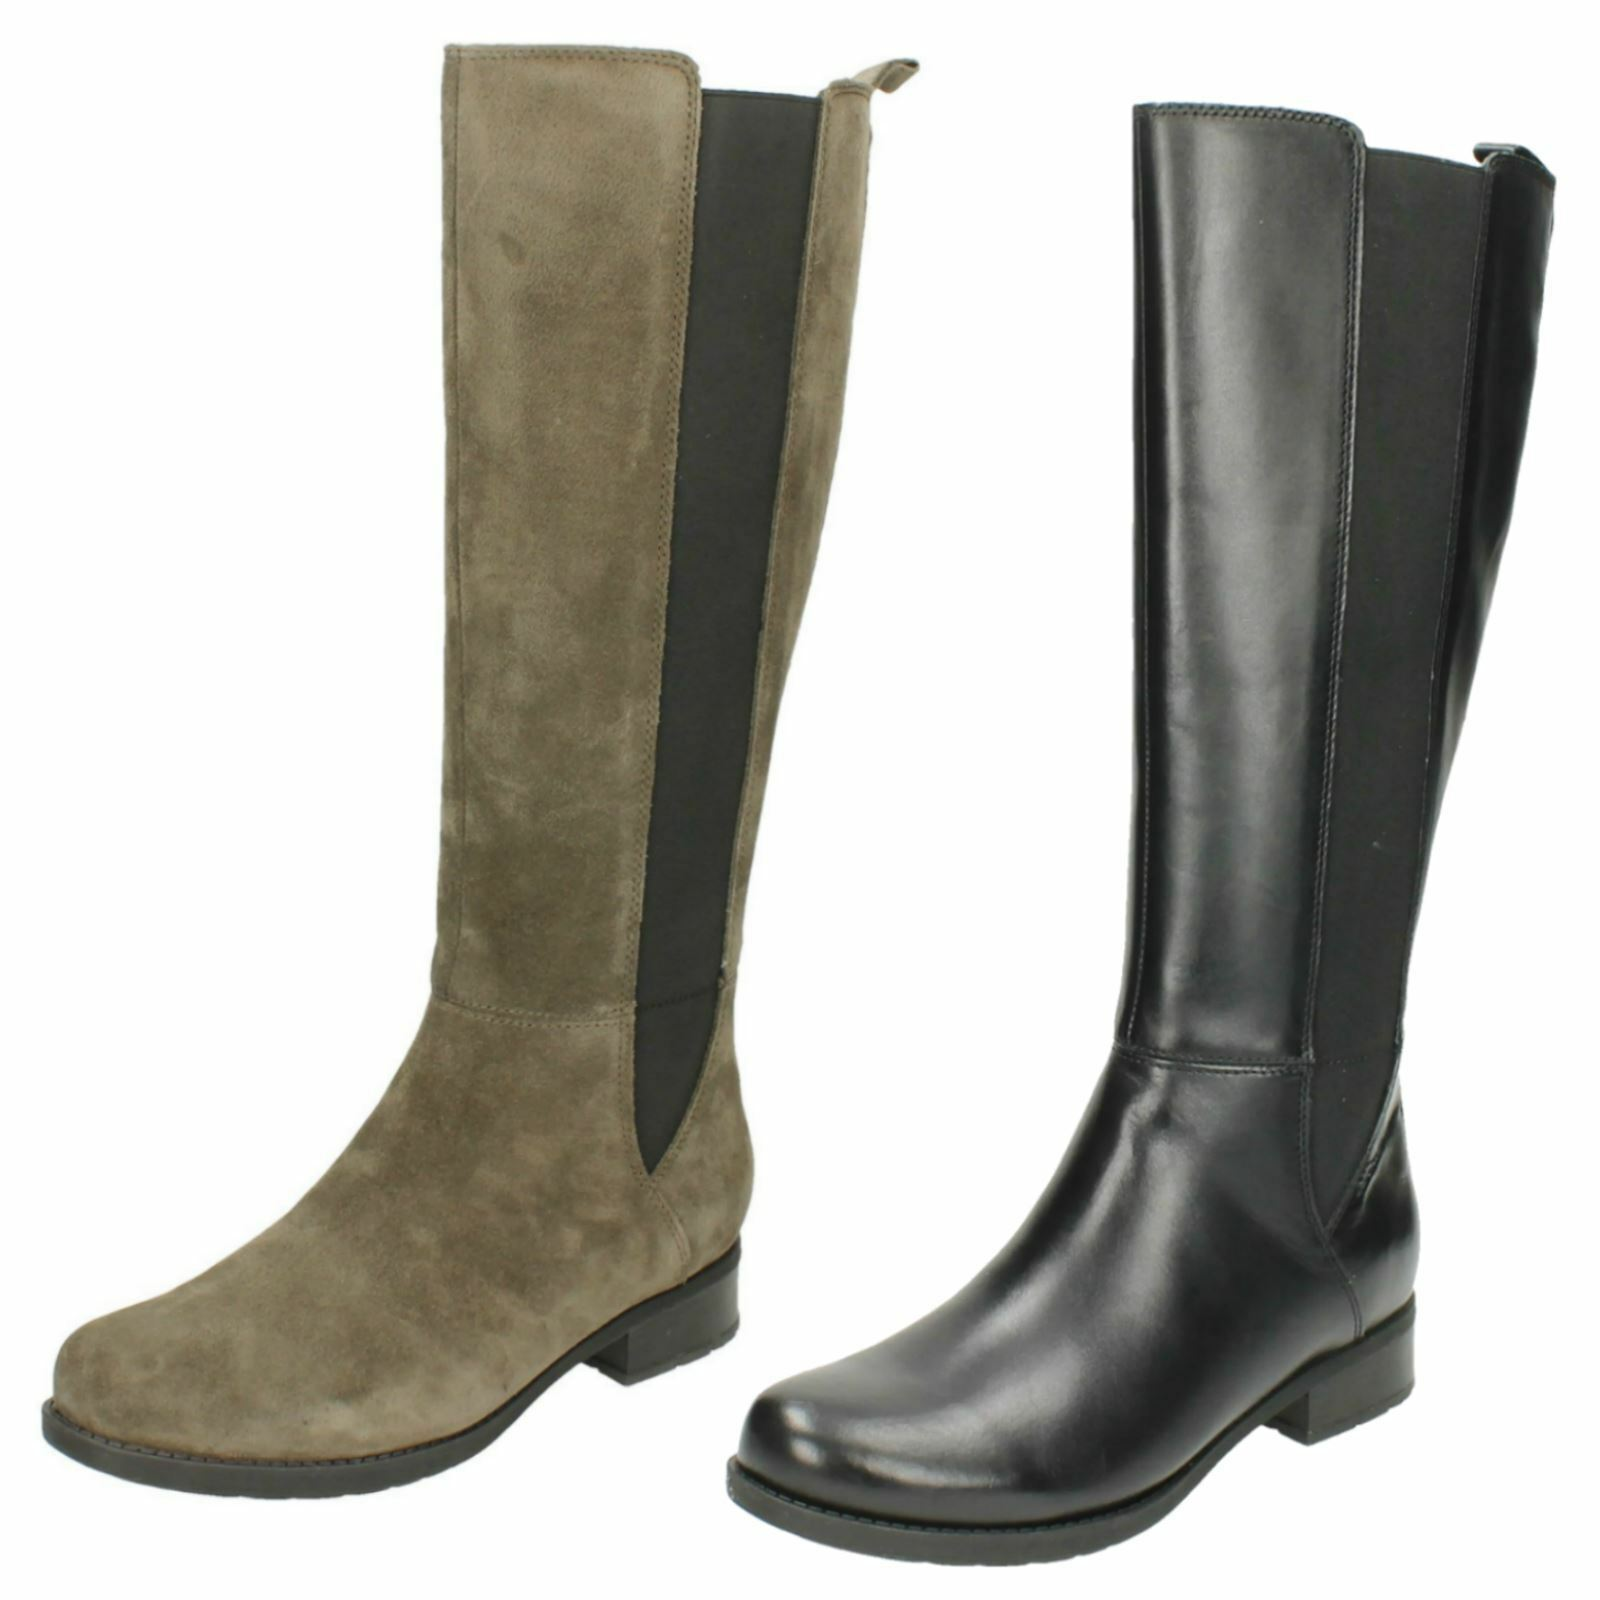 Grandes zapatos con descuento Ladies Clarks Verlie Gail Leather Casual Knee High Boots D Fitting